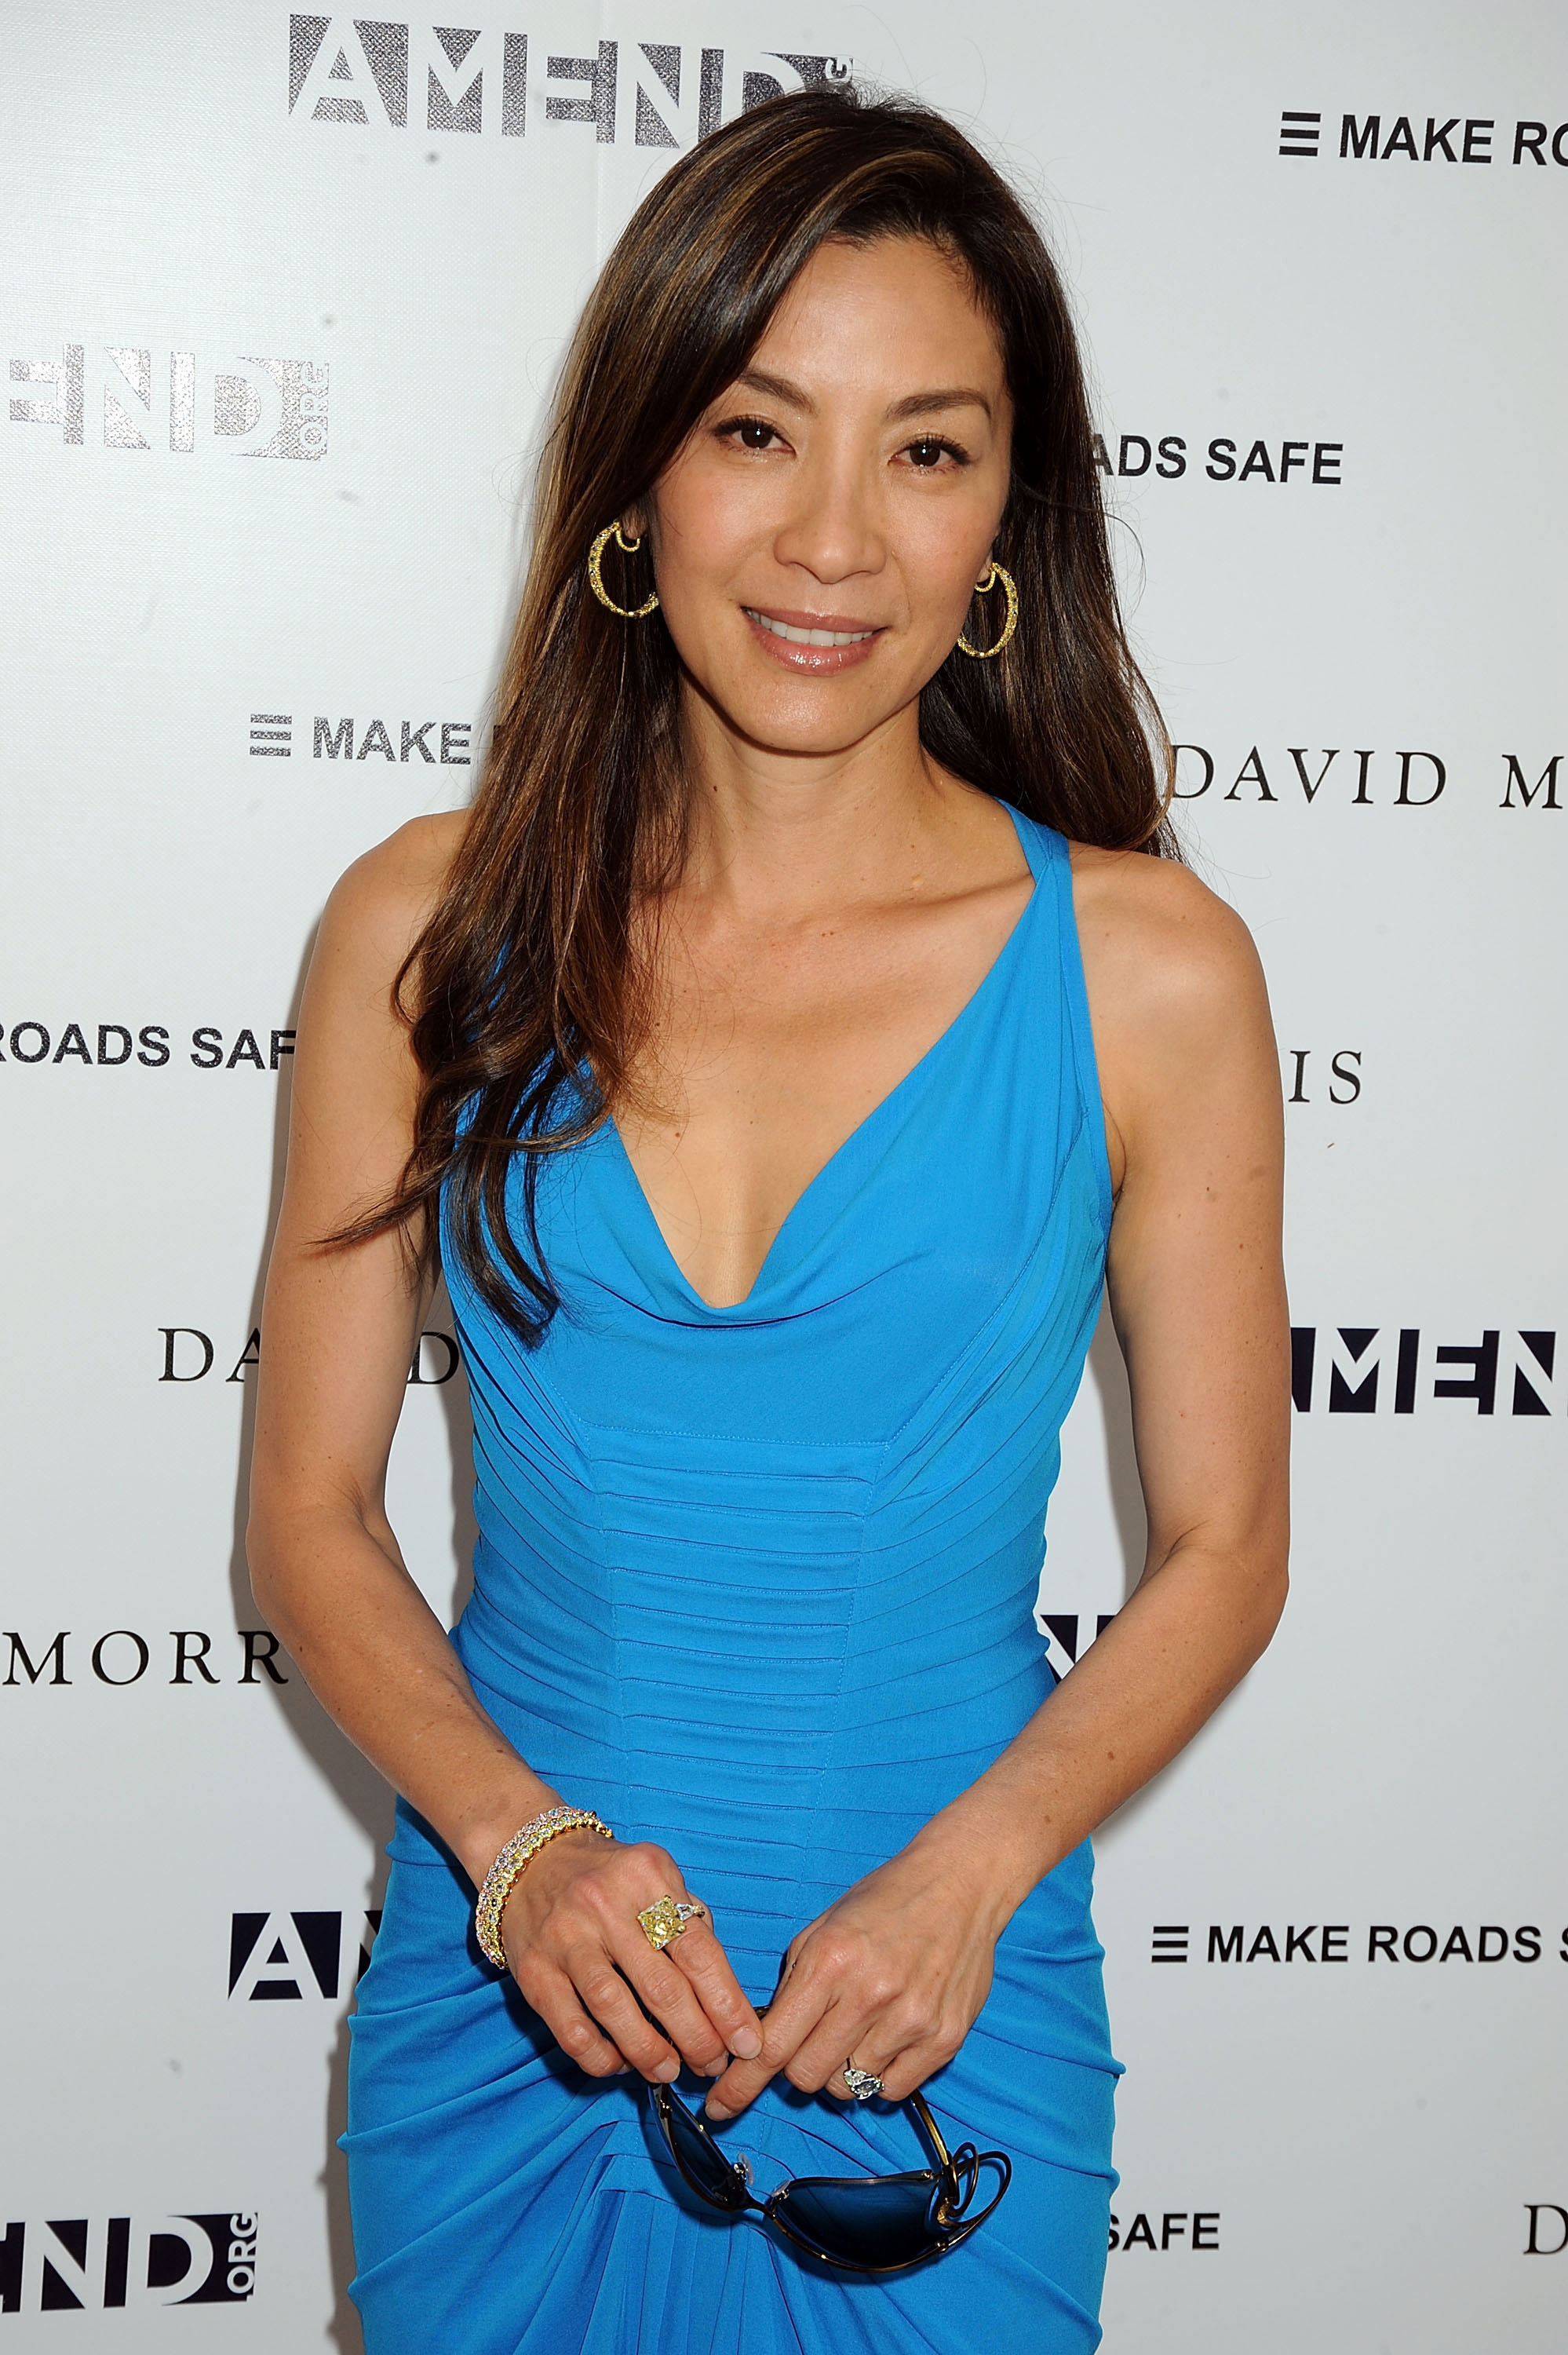 biography dato michelle yeoh Born as yang zi qiong in the mining town of ipoh, in west malaysia, in the lunar year of the tiger, michelle is the daughter of janet yeoh and yeoh.